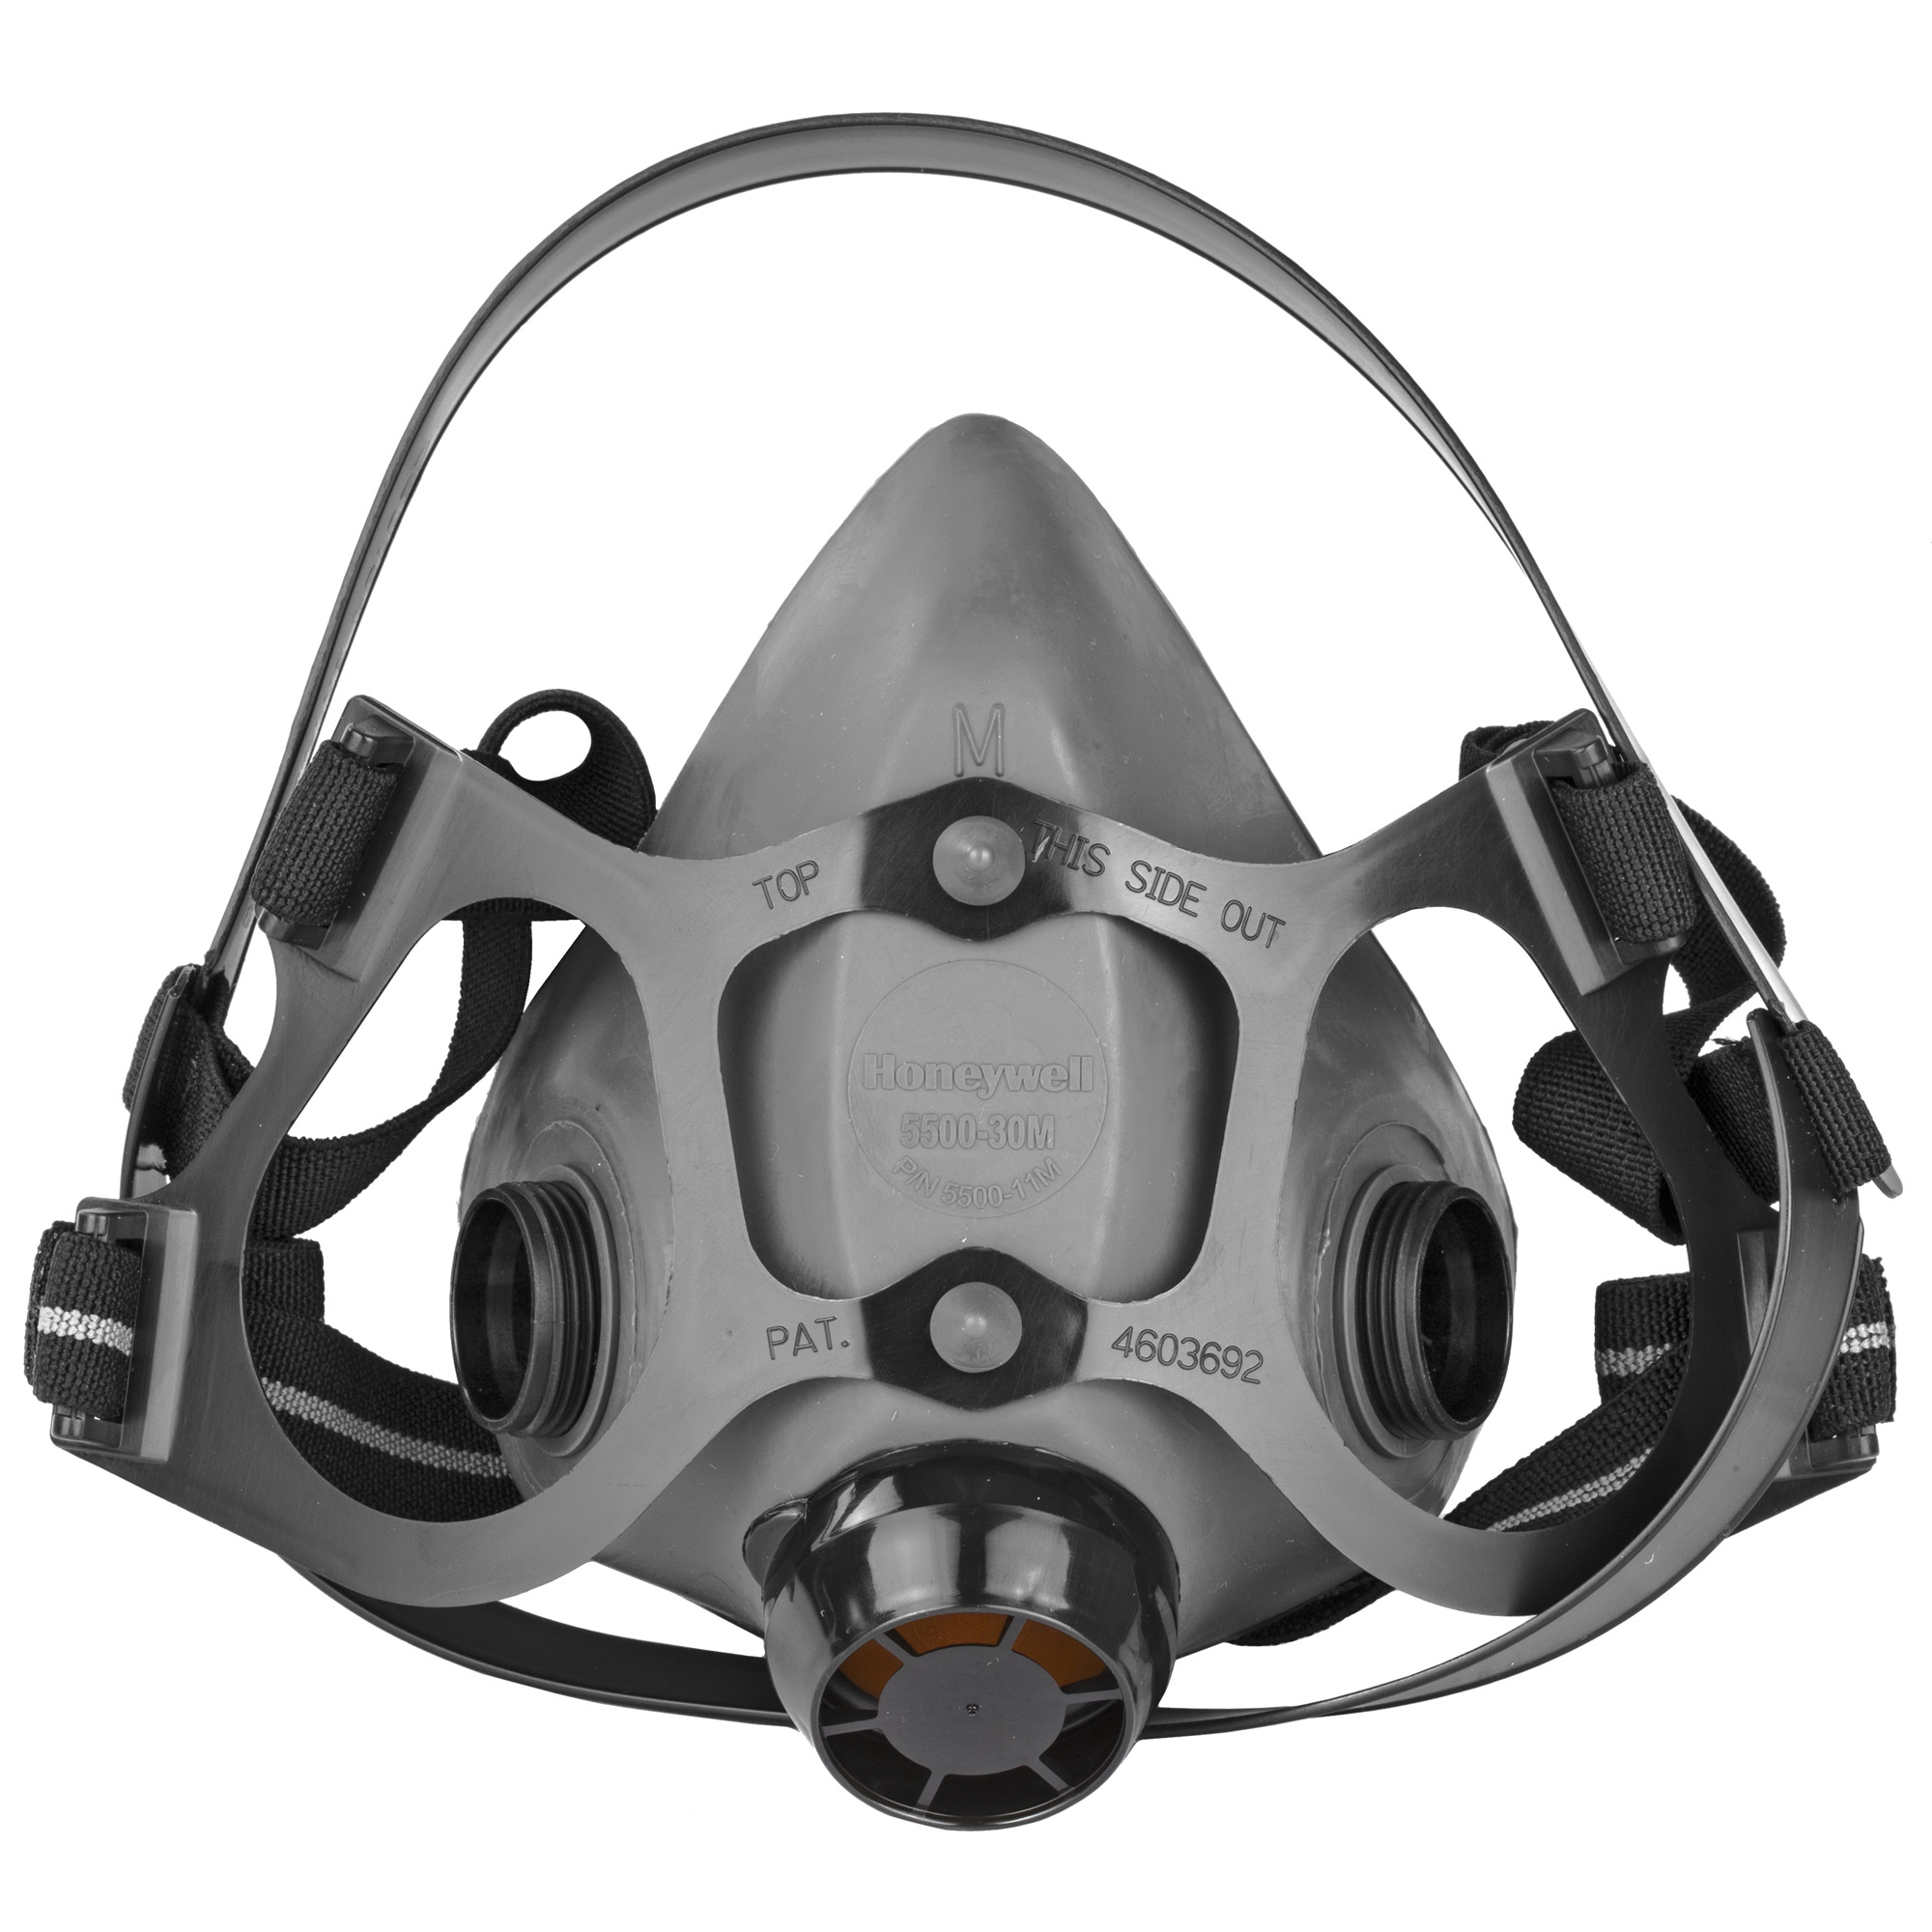 """The Elastomer half mask is the economical solution that does not skimp on features. A wide contoured sealing area provides great fit. The low """"dead air"""" space limits re-breathing of exhaled air for increase comfort and worker productivity. Latex free straps stretch and move with the worker while providing optimum support."""